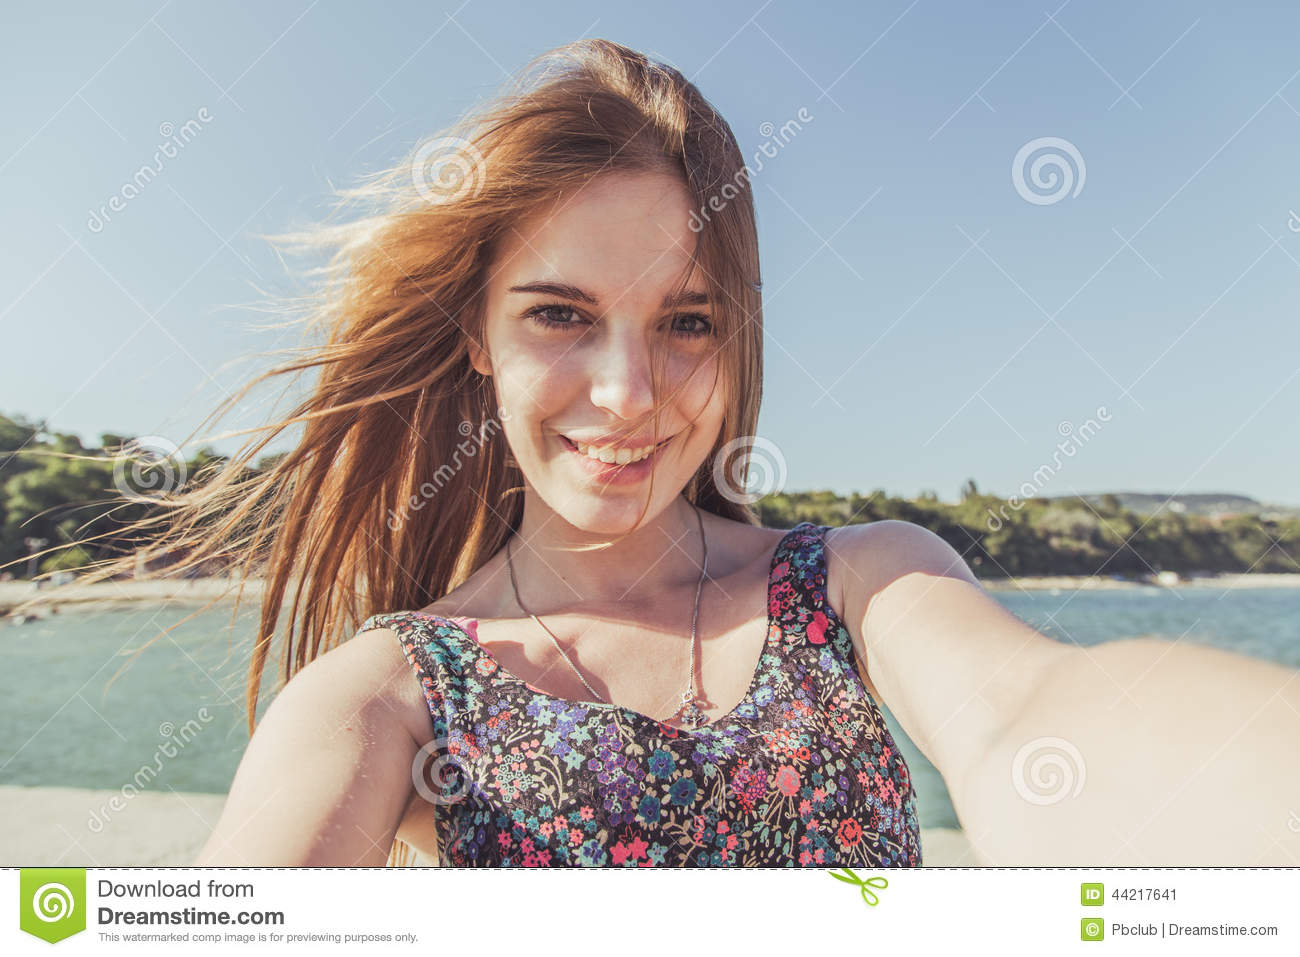 Young woman on the beach looking at camera